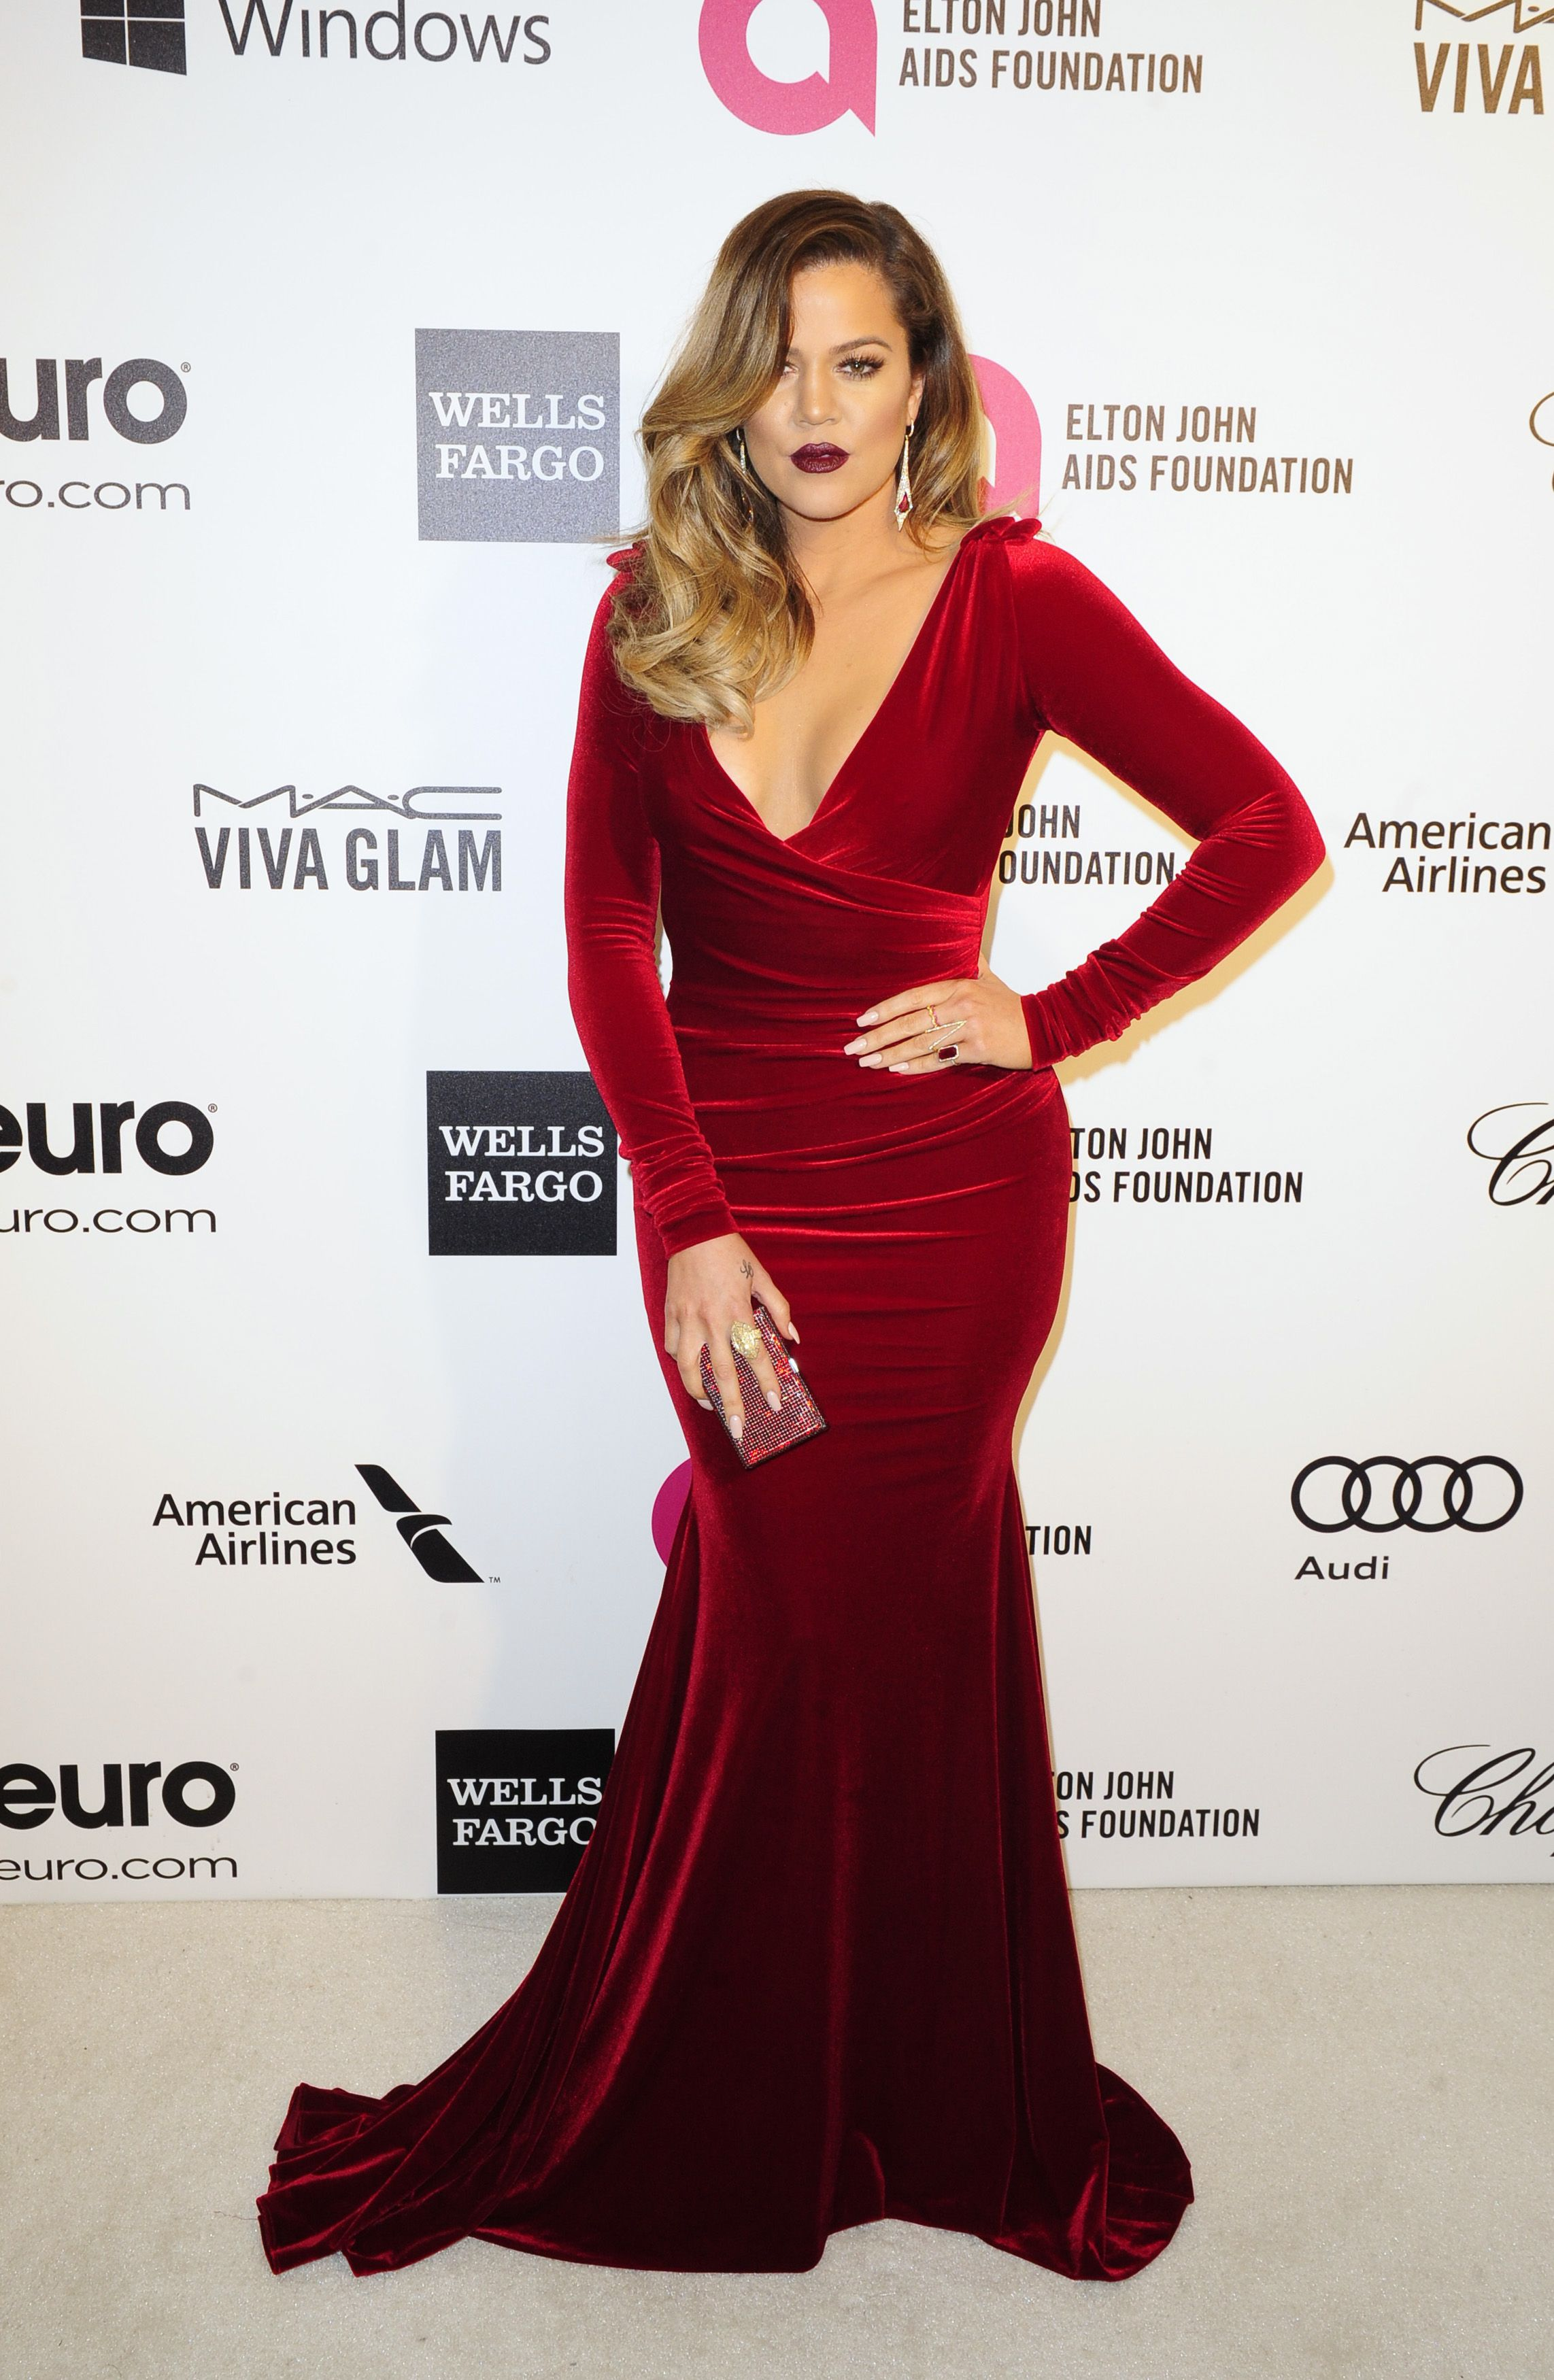 khloe-kardashian-red-dress-reuters